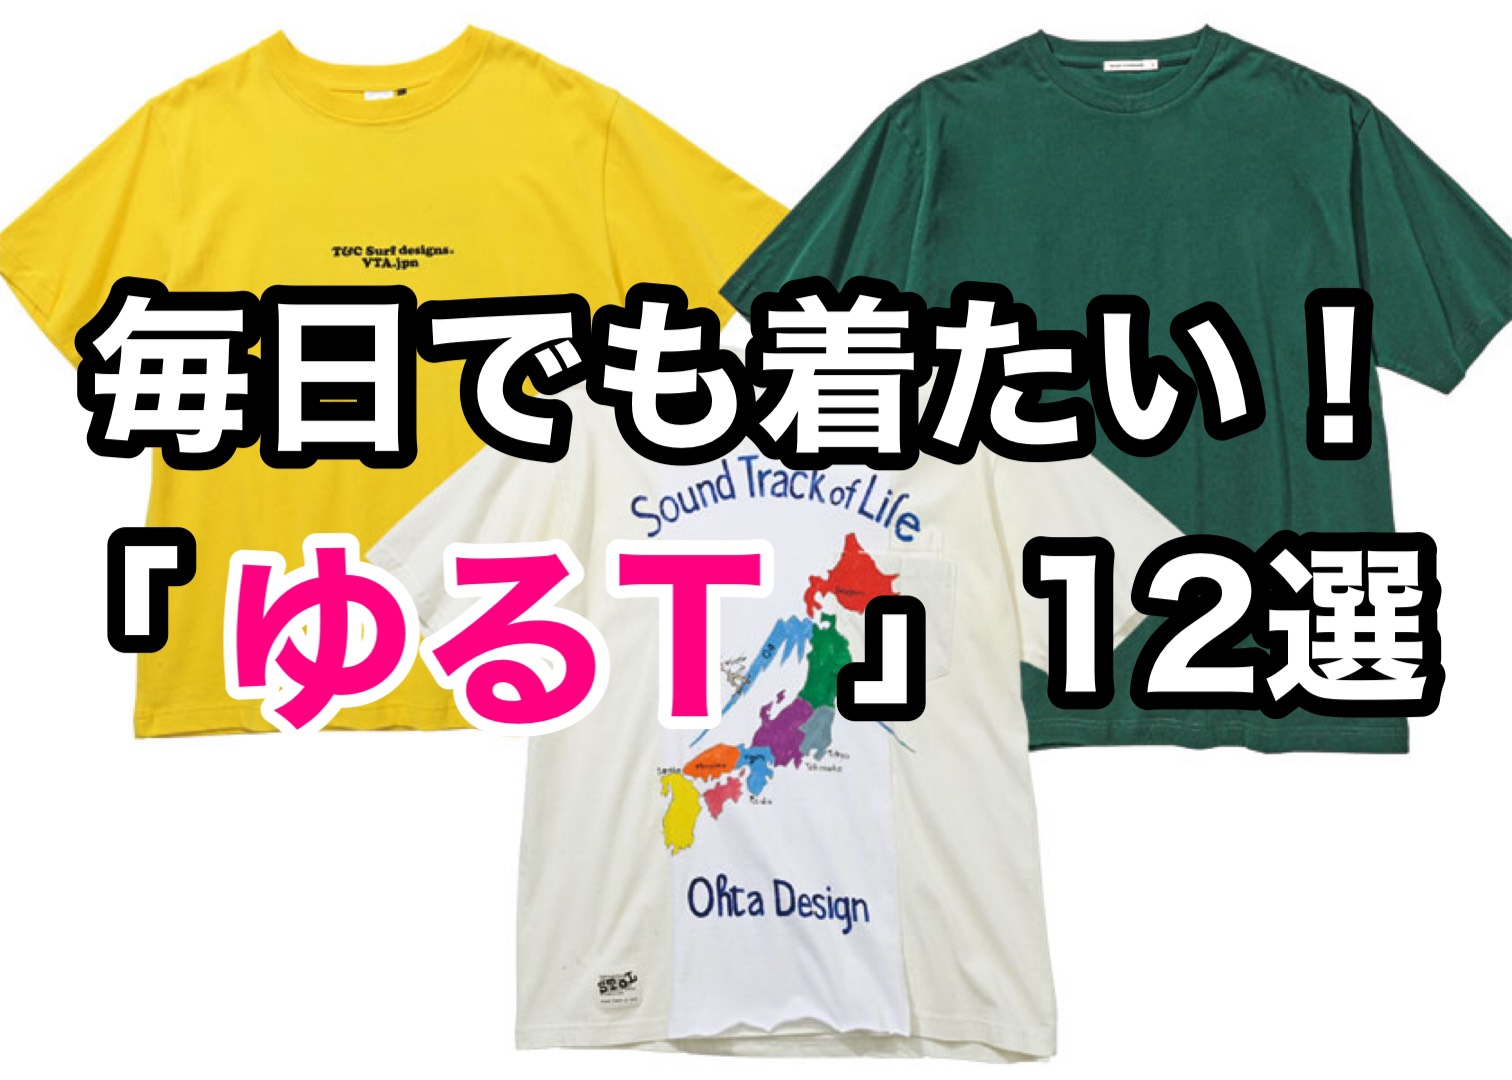 https://fineboys-online.jp/thegear/content/theme/img/org/article/3459/main.jpg?t=1624764082